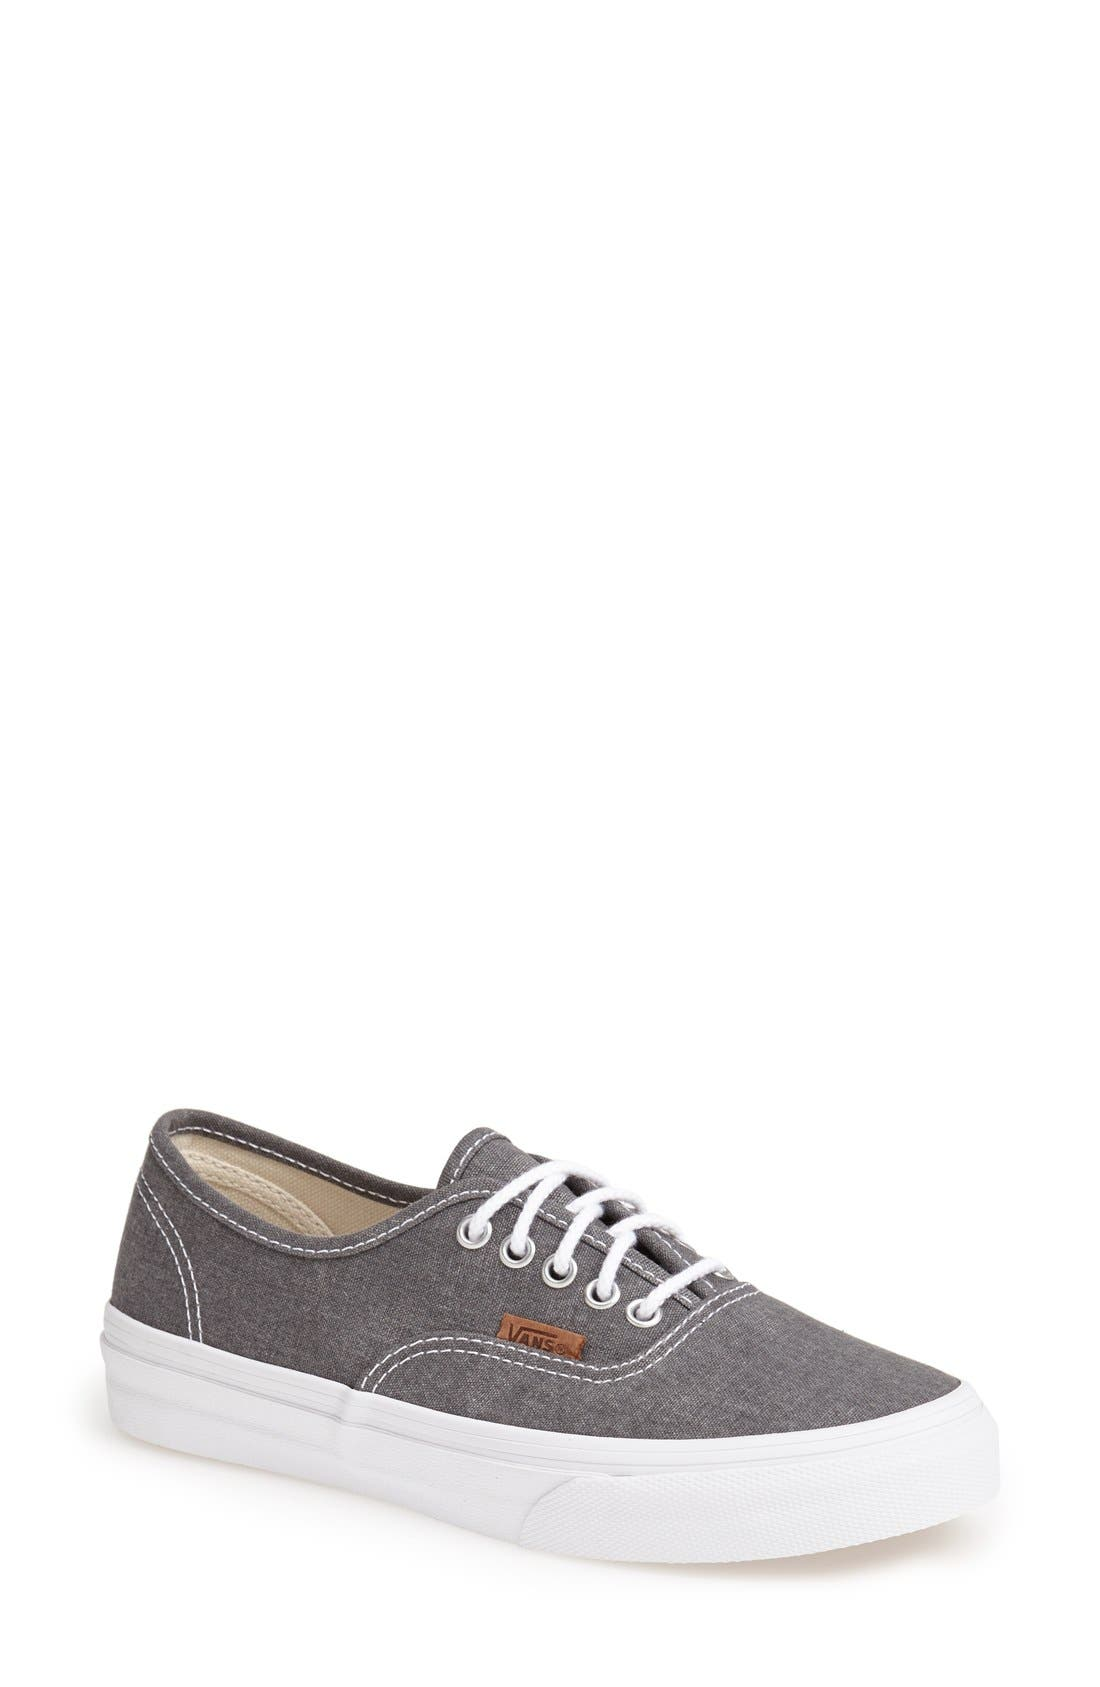 'Authentic - Slim' Washed Sneaker,                             Main thumbnail 1, color,                             020